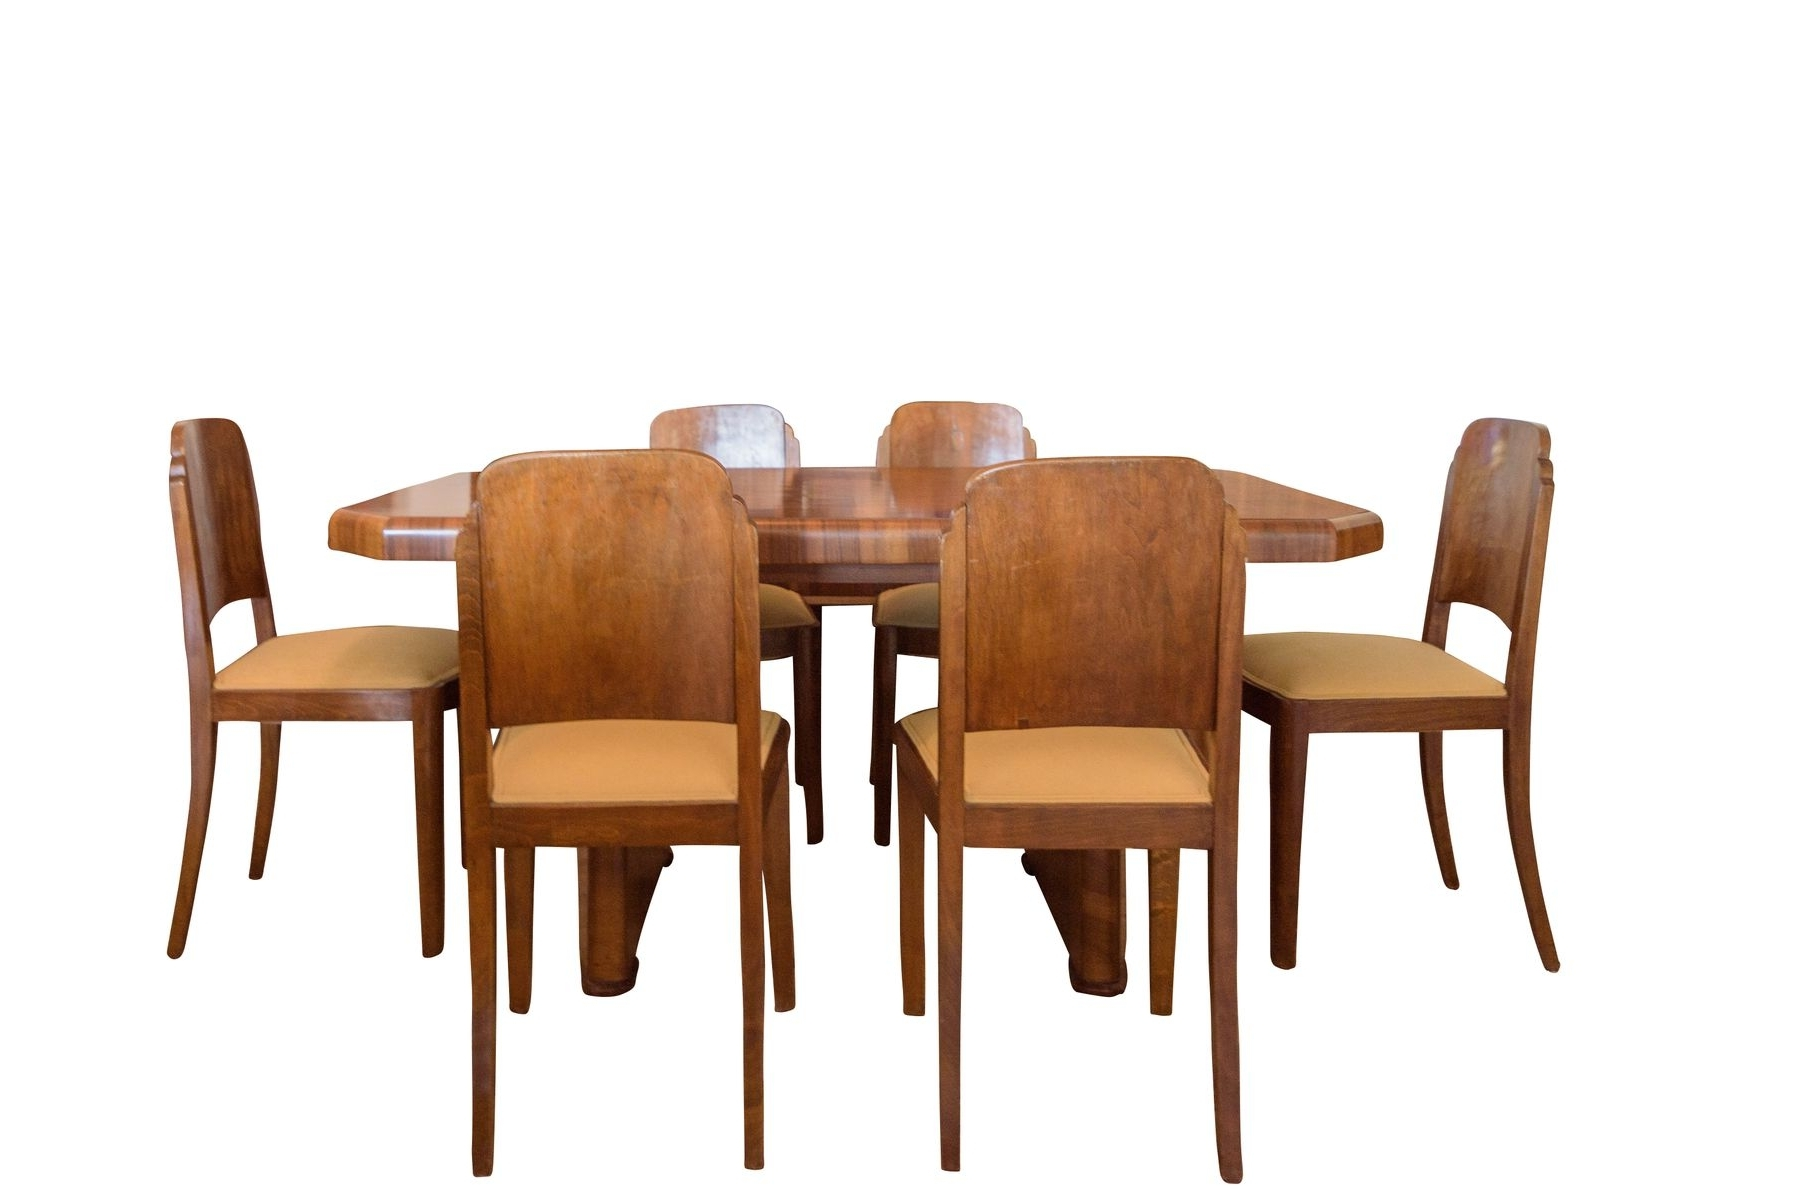 Most Popular Walnut Dining Tables And 6 Chairs Throughout Art Deco Walnut Dining Table & 6 Chairs, 1920S For Sale At Pamono (View 14 of 25)